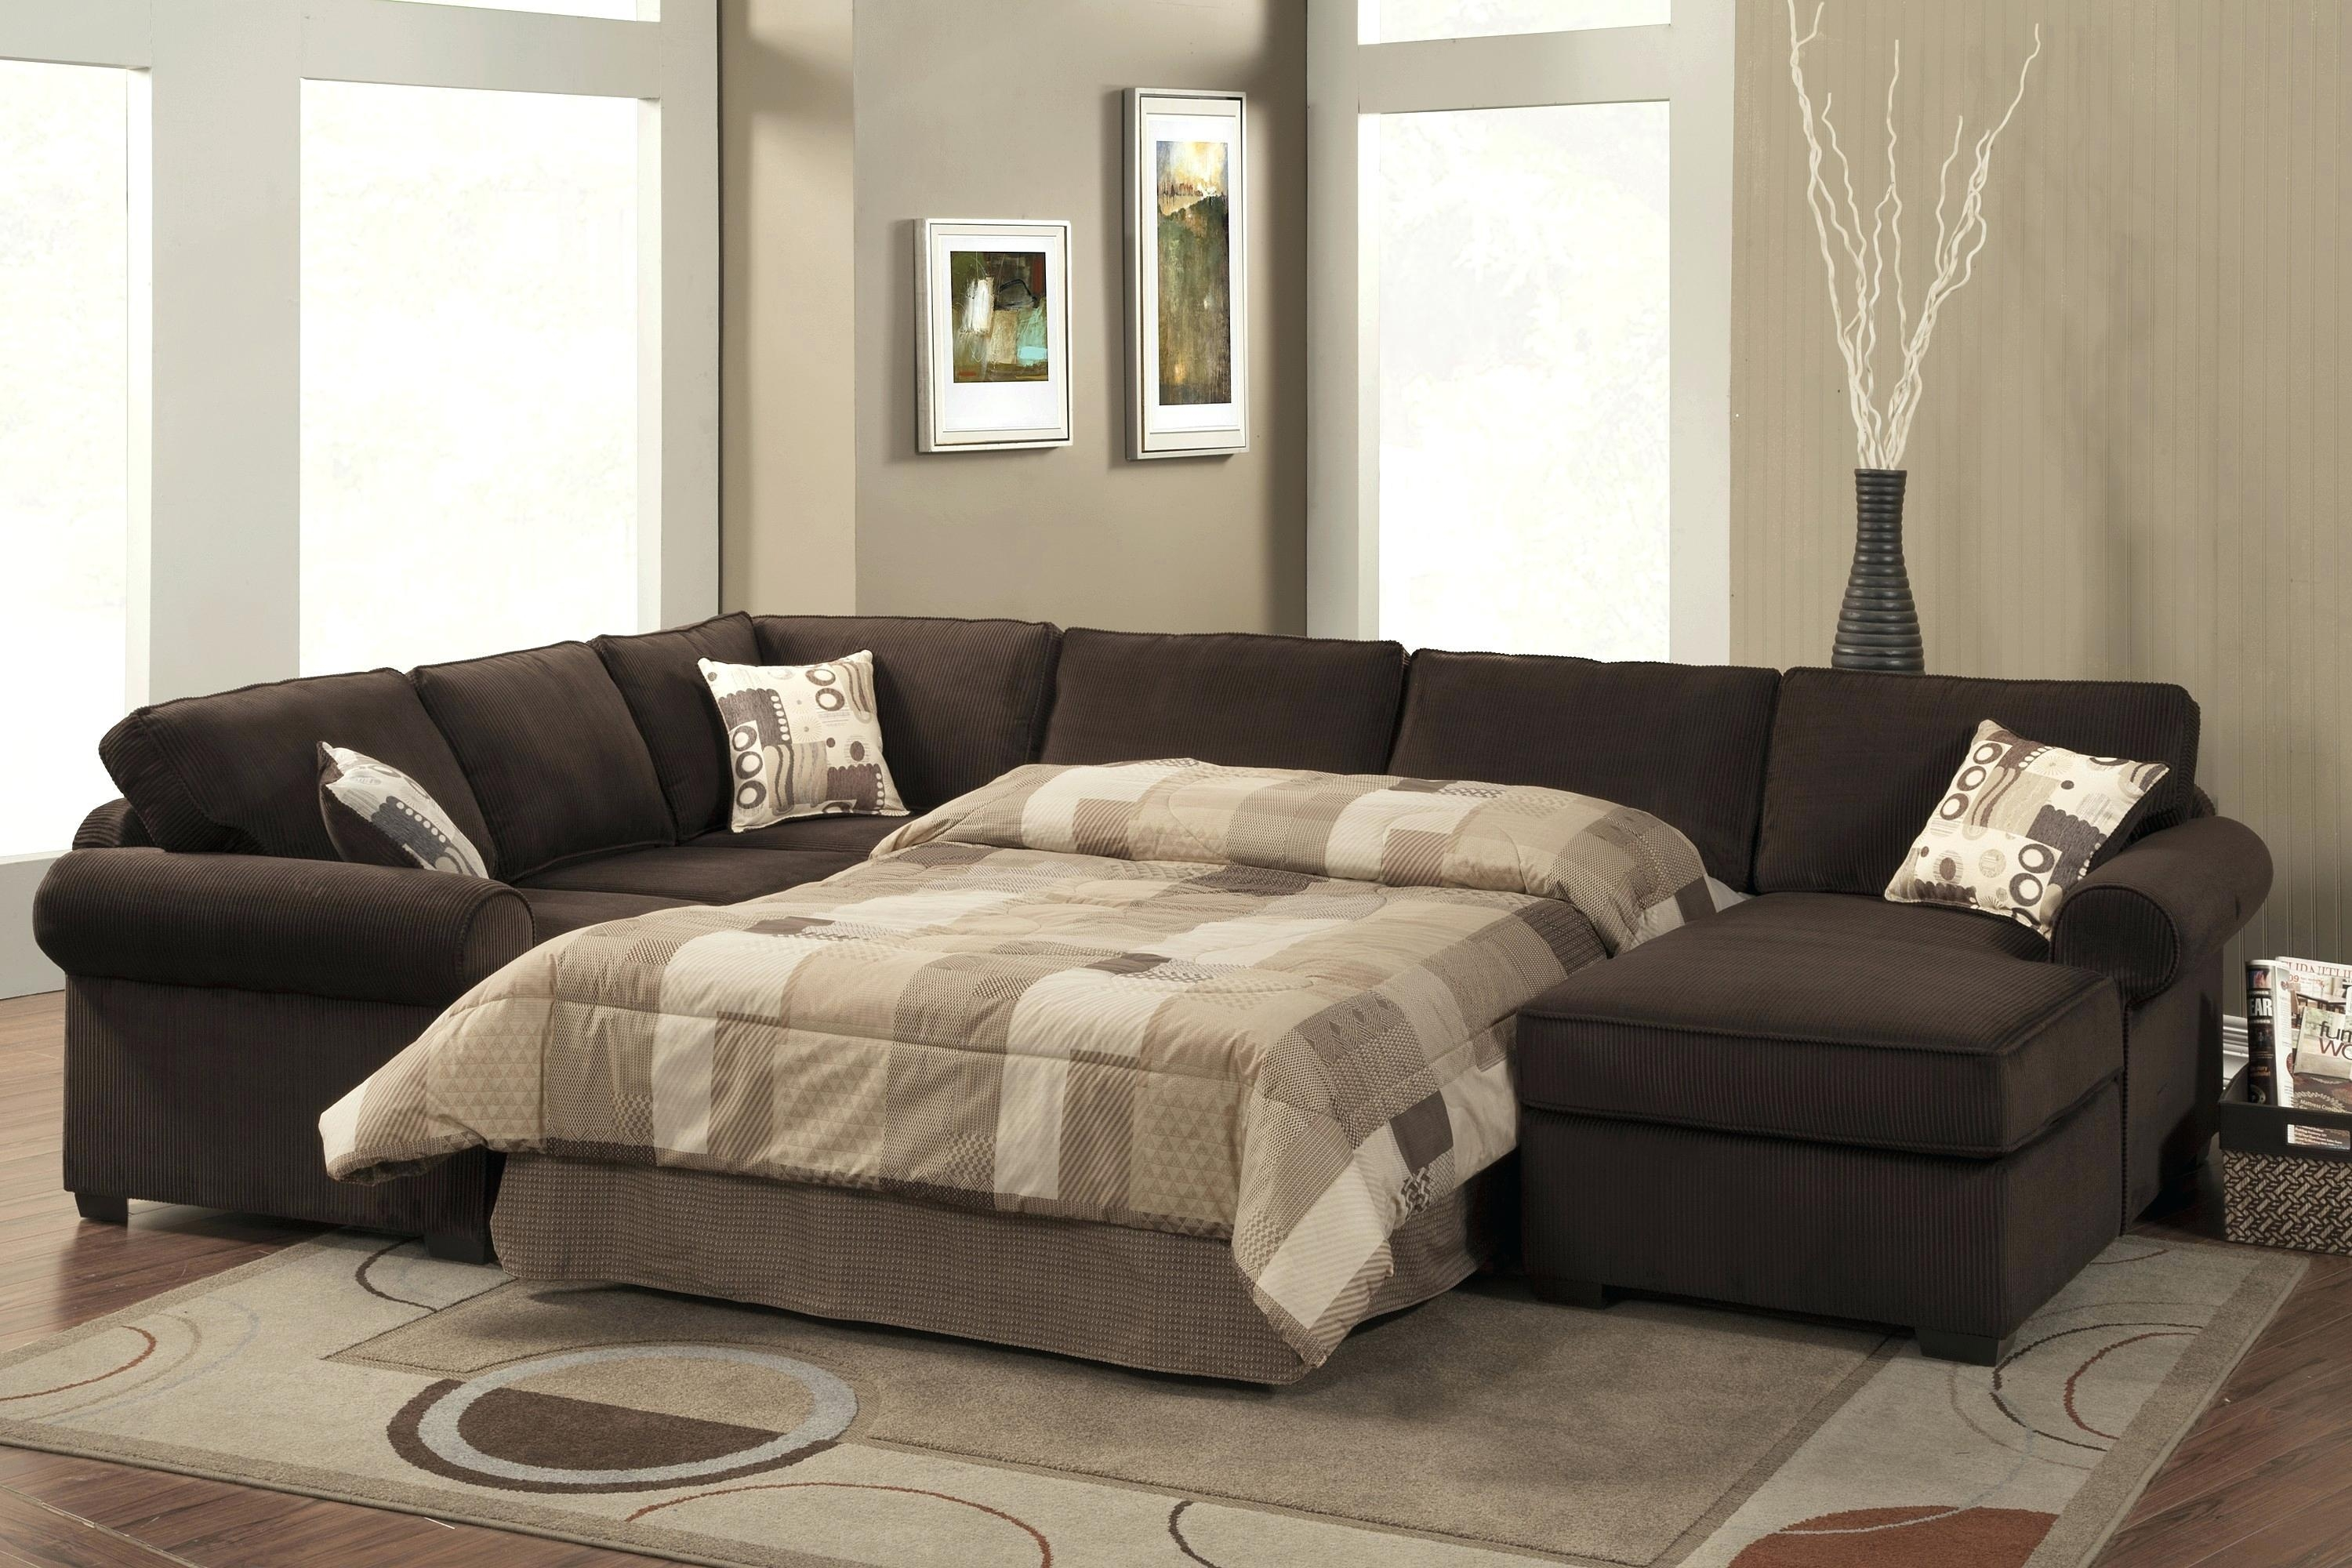 Leather Blend Sectional Astounding U Shaped Sofa With Chaise 12 Regarding U Shaped Reclining Sectional (View 13 of 20)